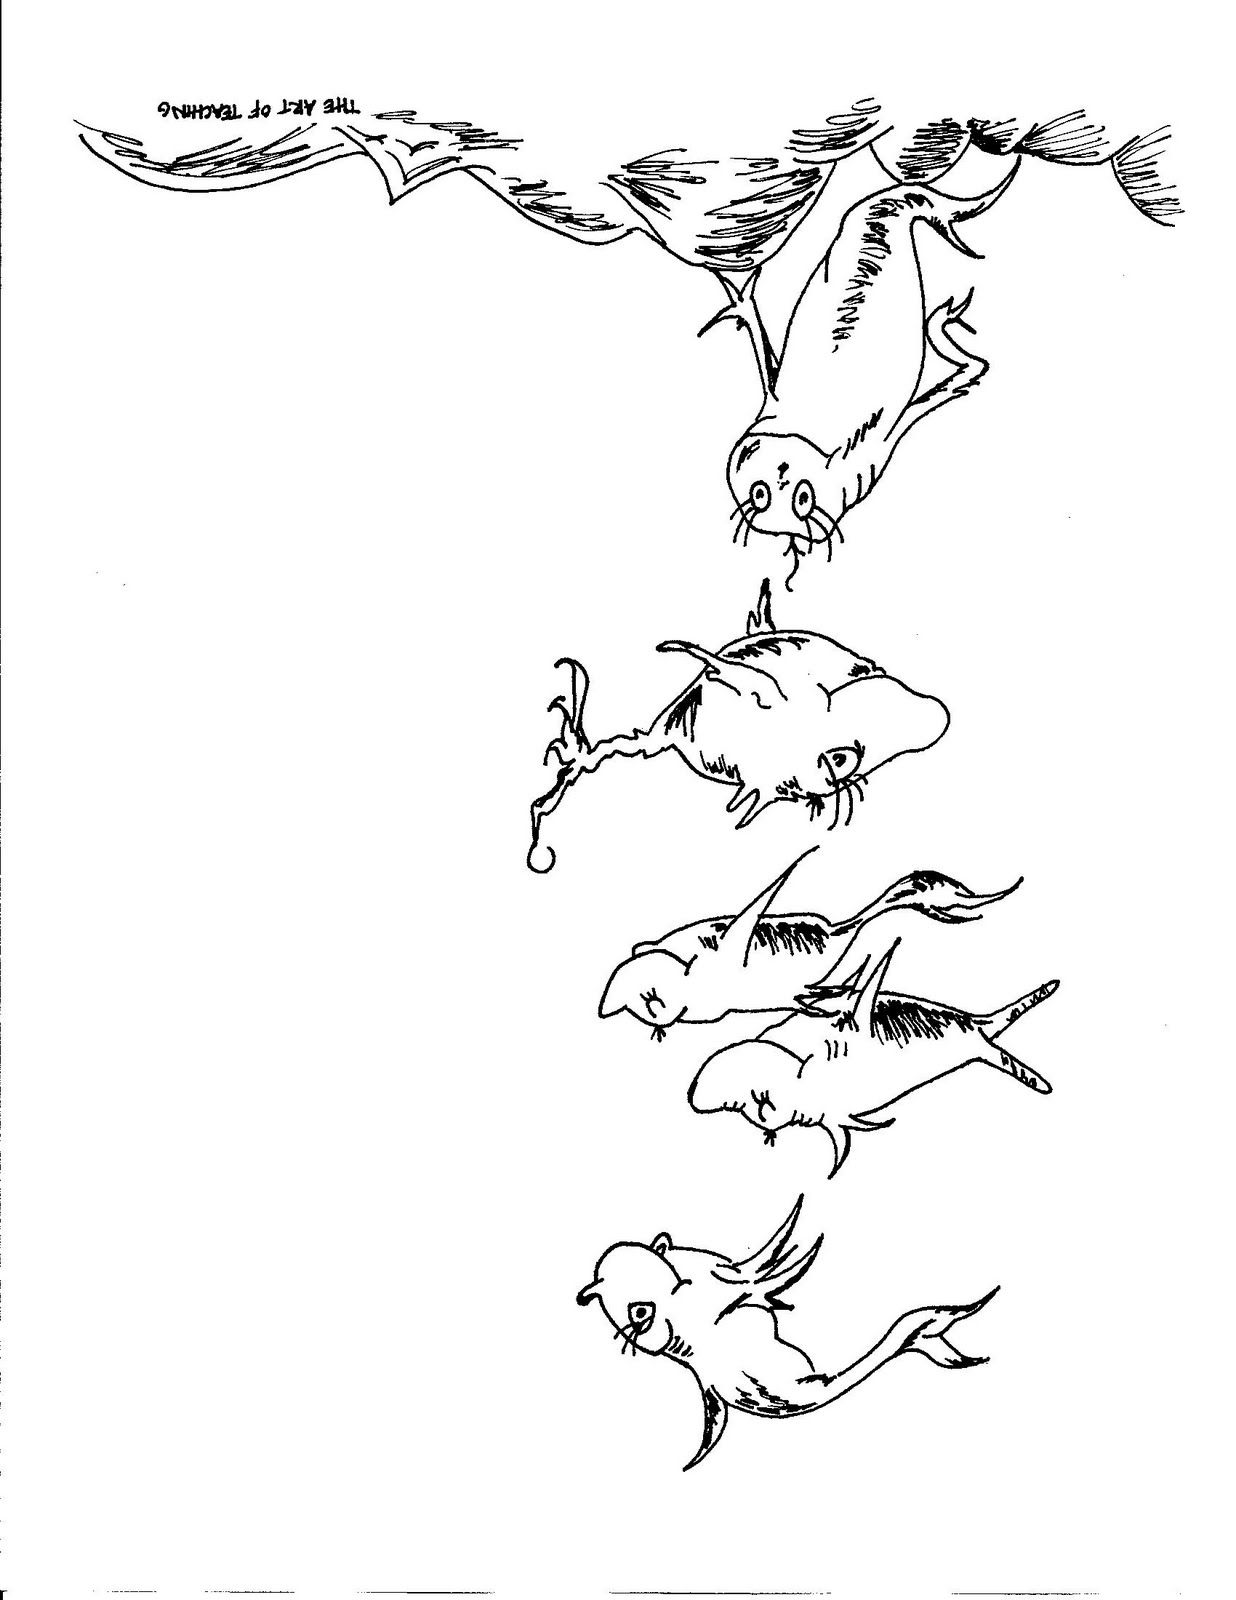 dr seuss fish coloring page how to draw the fish from the cat in the hat dr seuss dr seuss page coloring fish